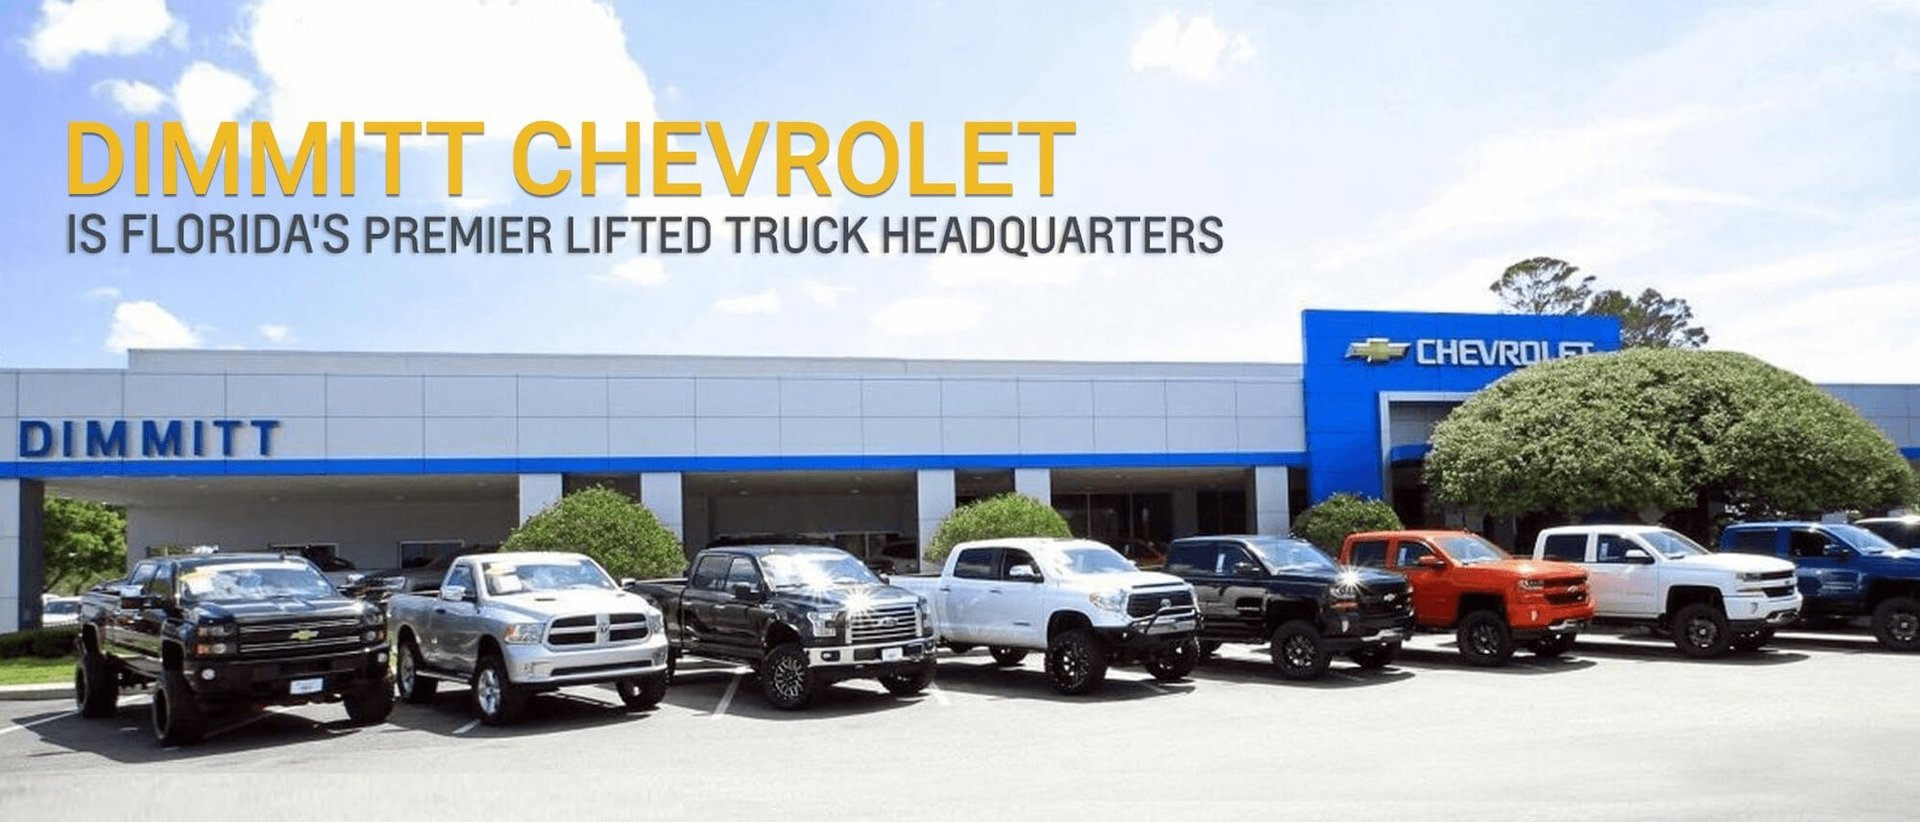 Dimmitt Chevrolet is Florida's Premier Lifted Truck Headquarters